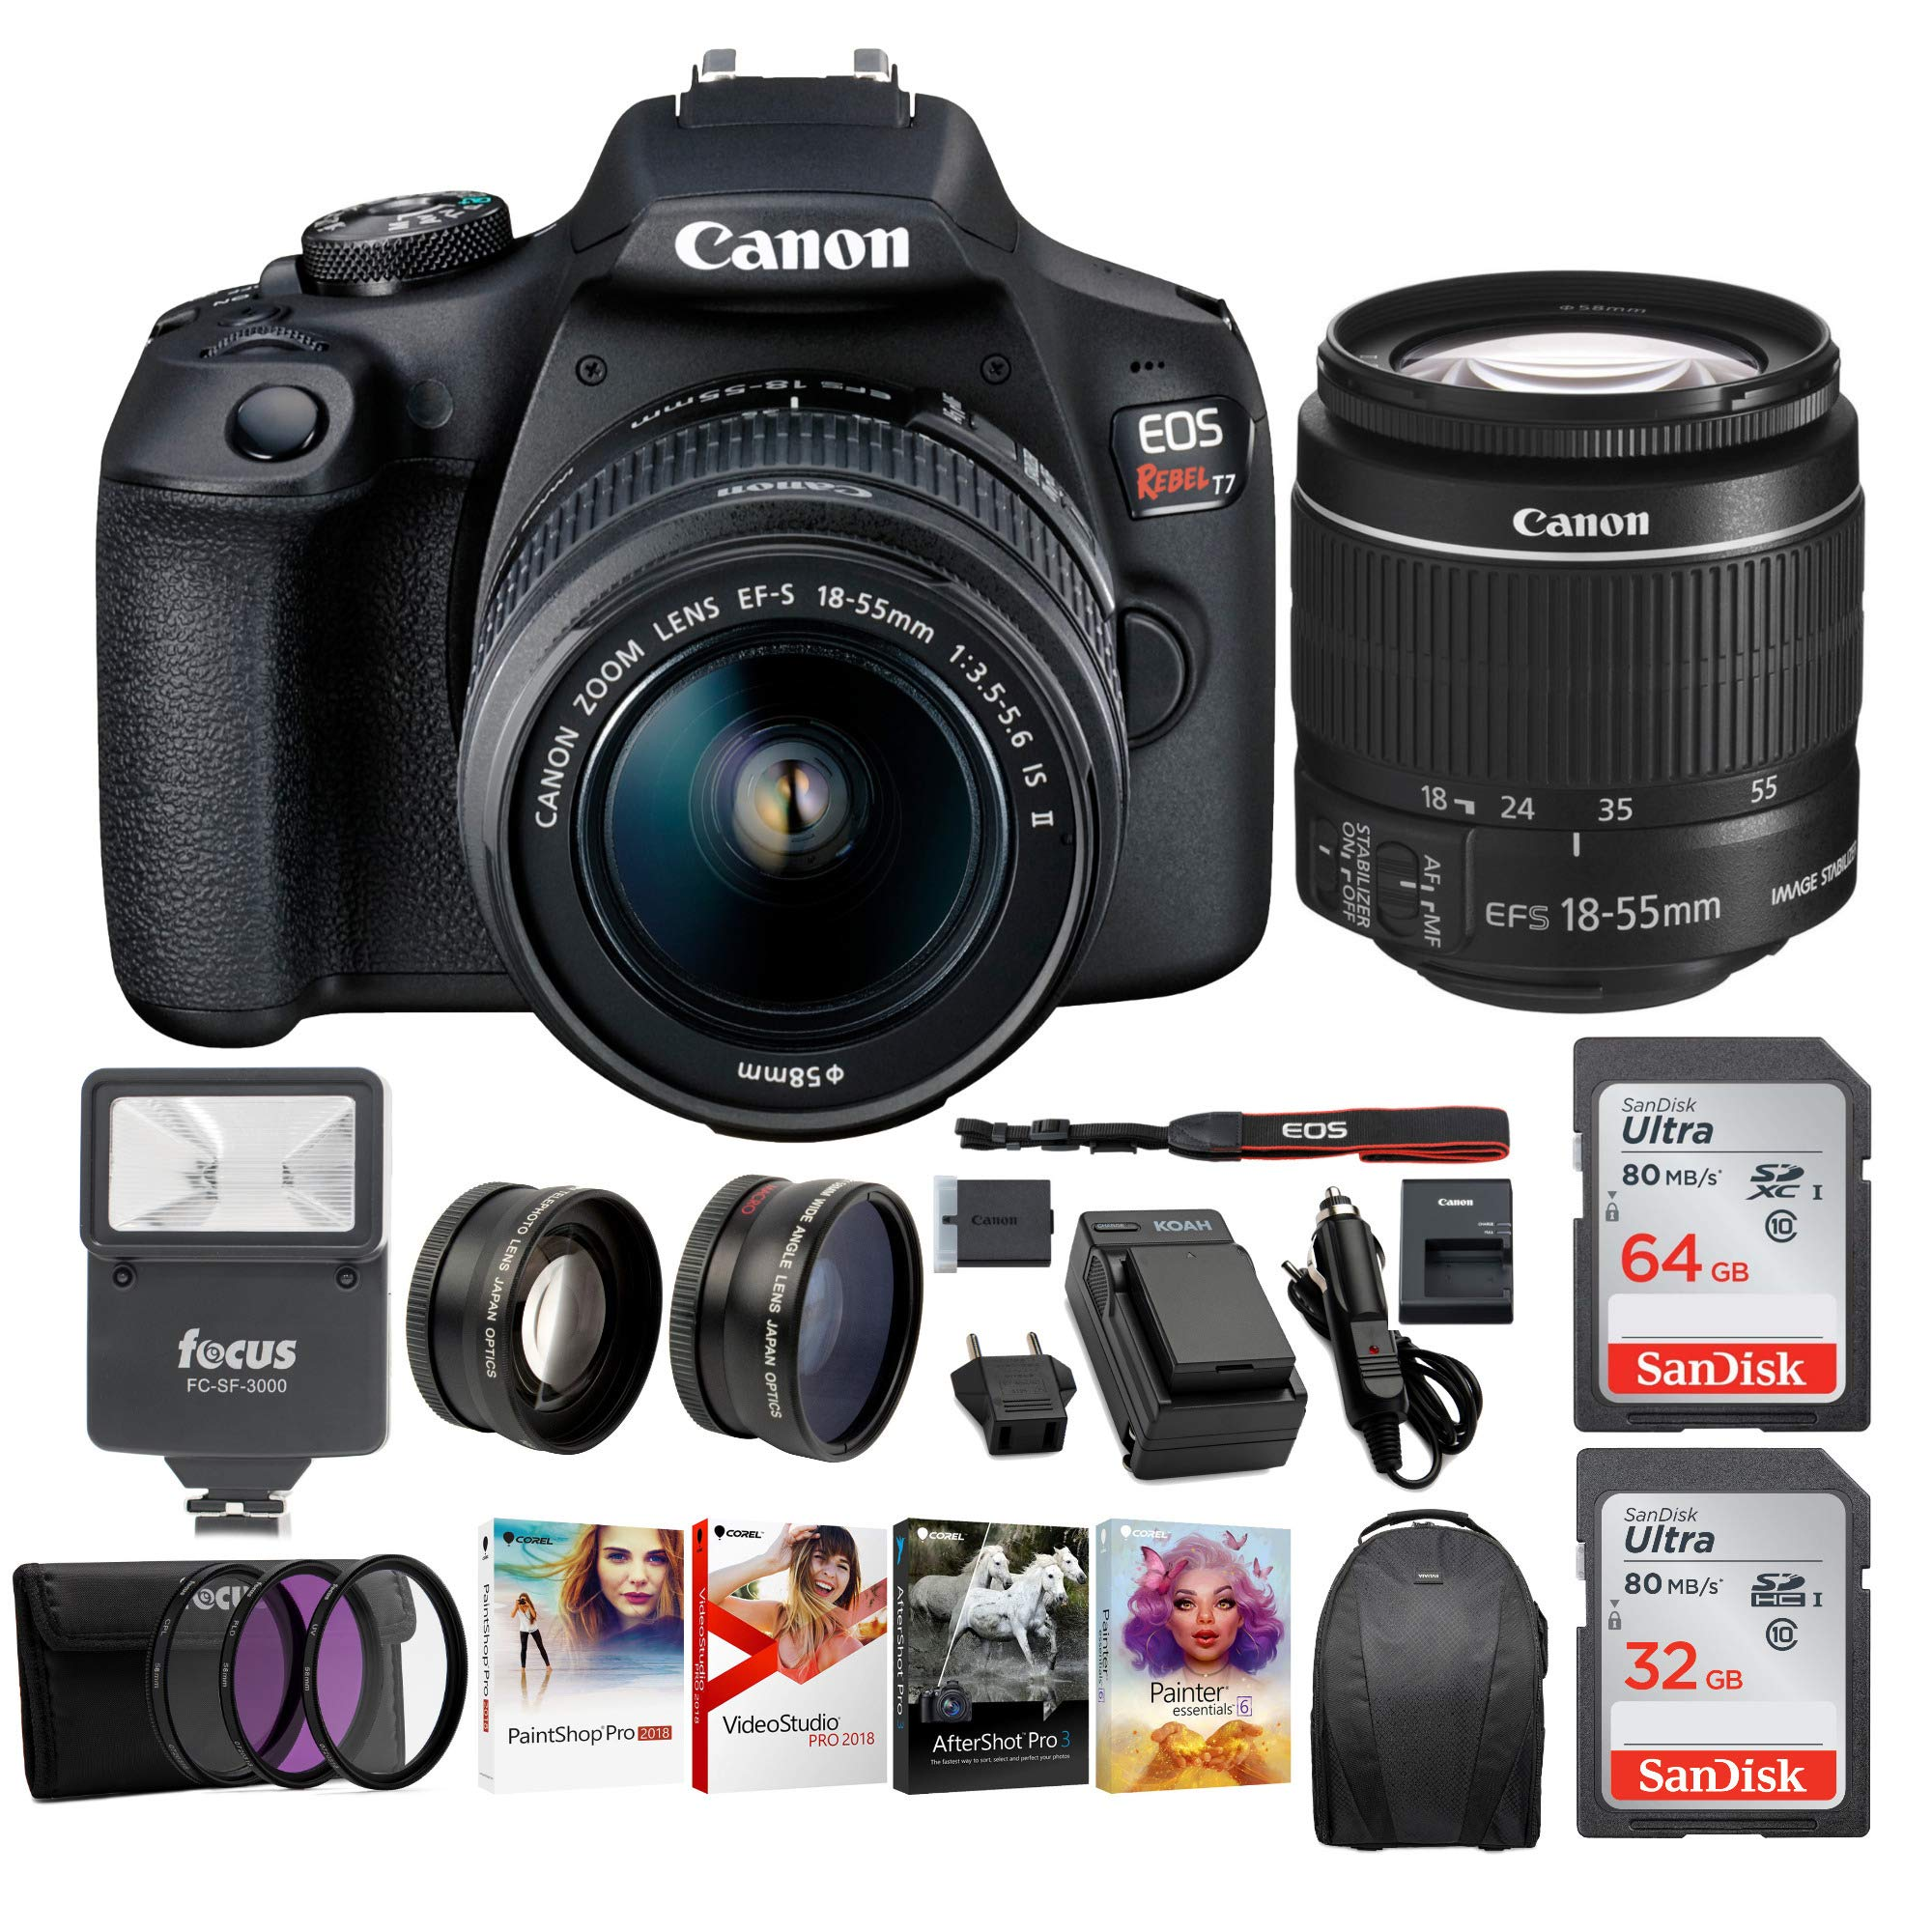 Canon EOS Rebel T7 Digital Camera: 24 Megapixel 1080p HD Video DSLR Bundle W/Wide Angle 18-55 MM Lens 64 & 32GB SD Cards + Flash + Spare Battery - Professional Vlogging Sports and Action Cameras by Canon